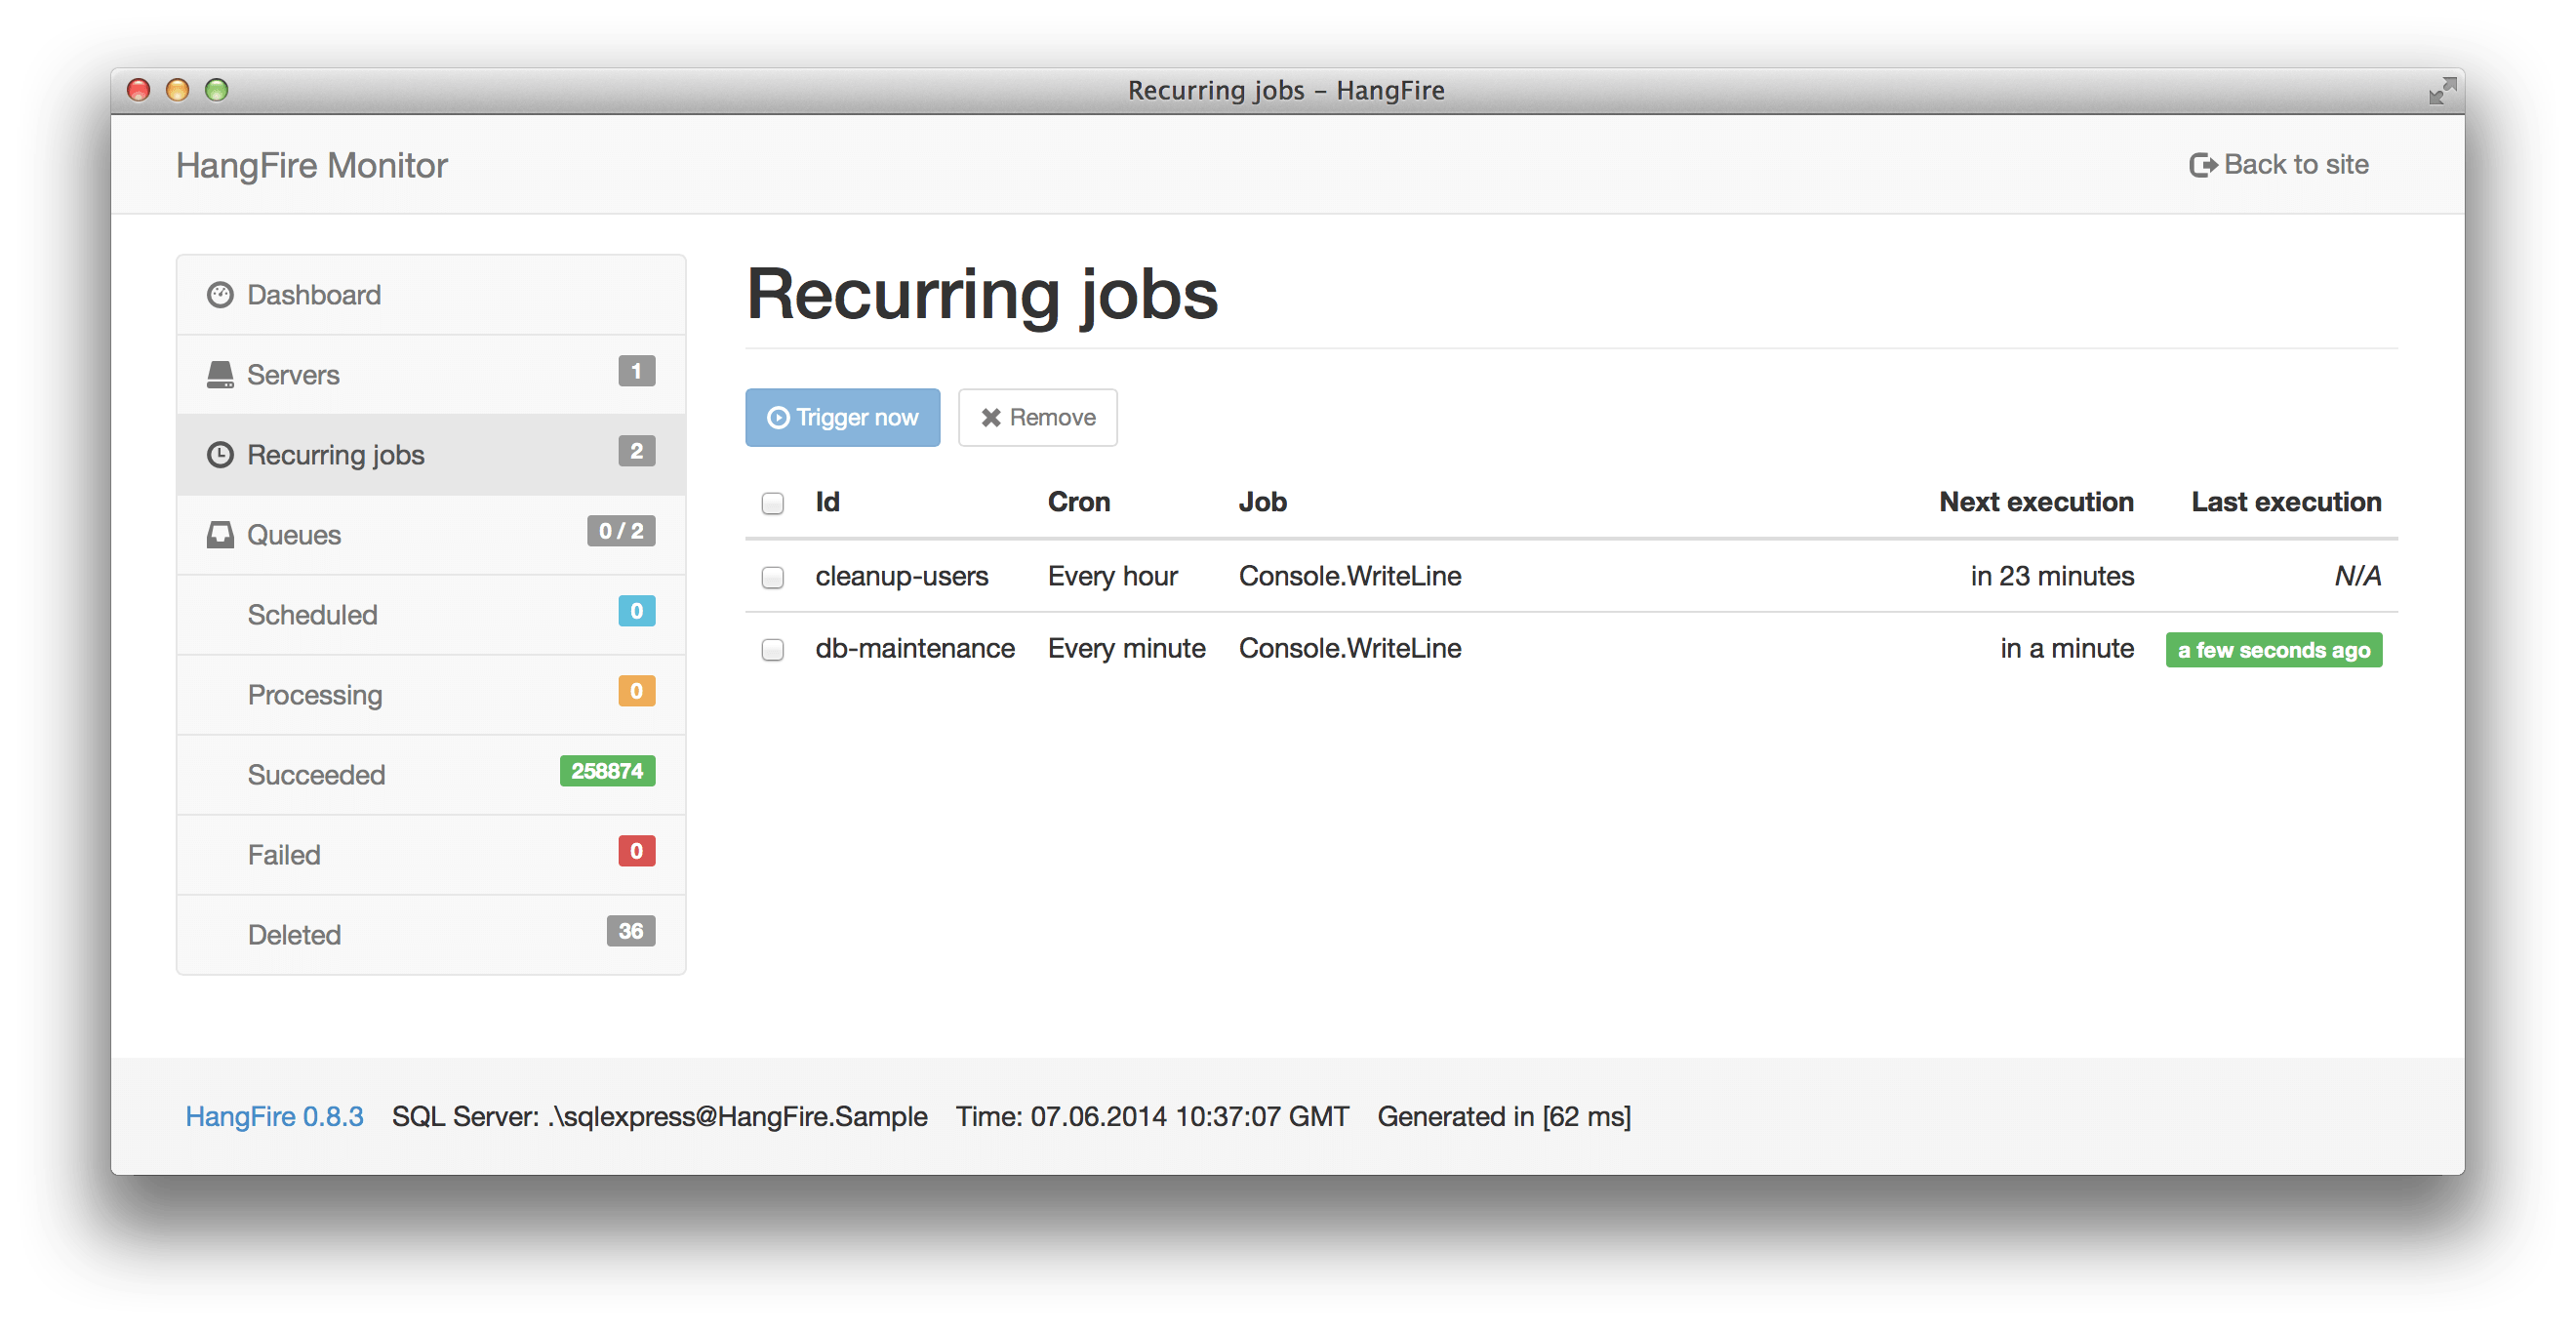 Recurring jobs